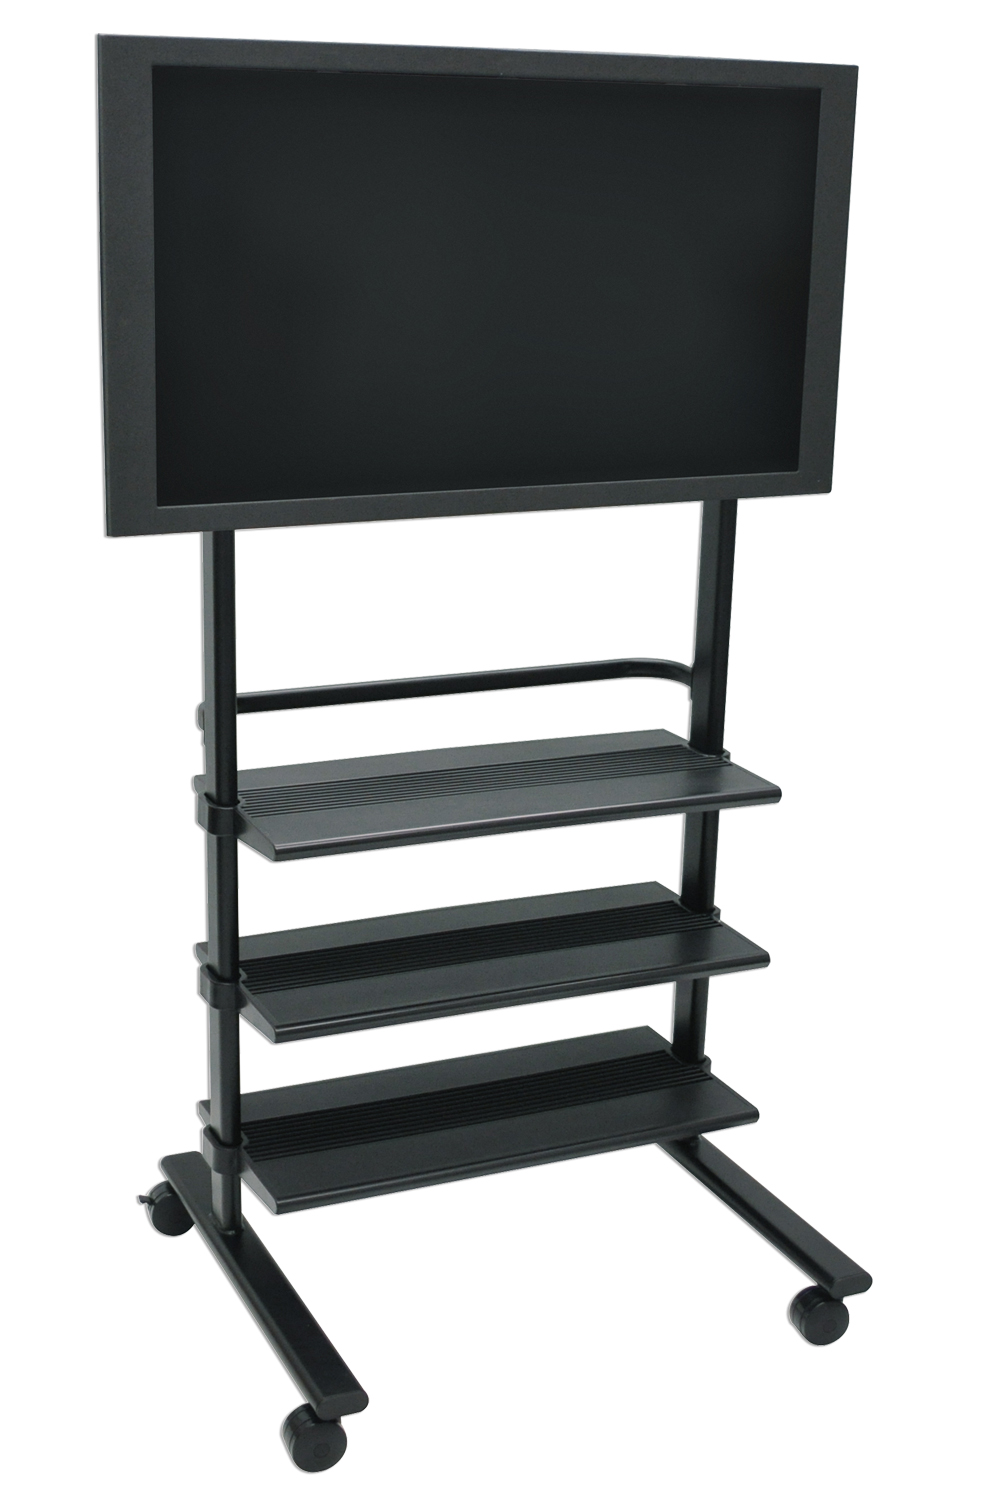 Offex Flat Panel TV Stand With Mounting Brackets Fit for Plasma / LCD Monitor, 3 Plastic Shelves, 3